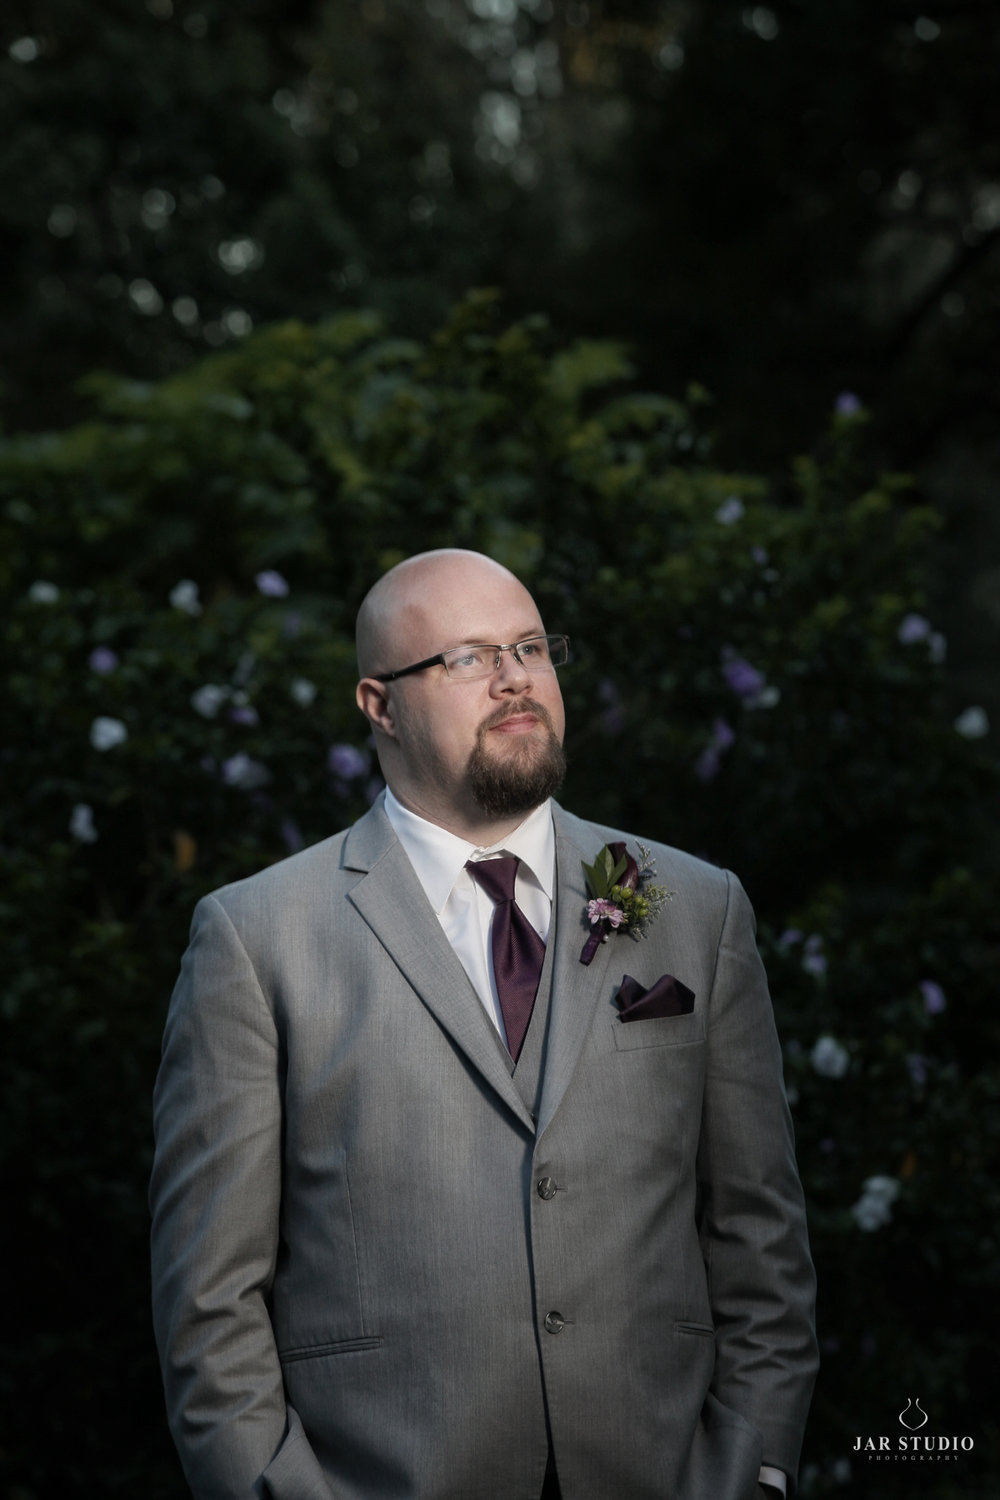 05-groom-garden-portrait-orlando-jarstudio-wedding-photographer.JPG